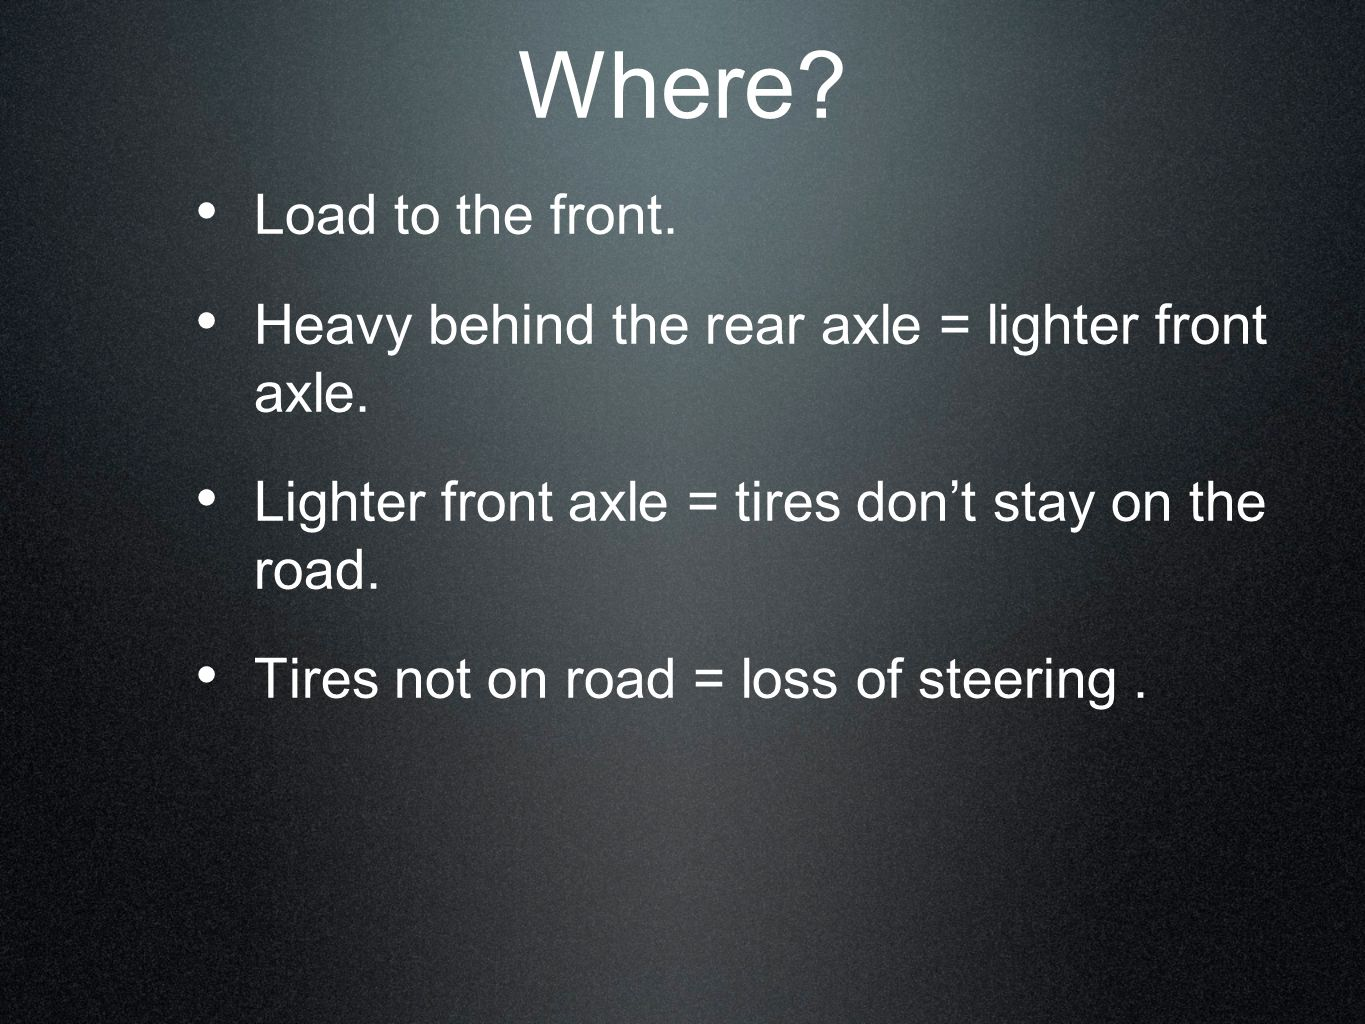 Where Load to the front. Heavy behind the rear axle = lighter front axle. Lighter front axle = tires don't stay on the road.